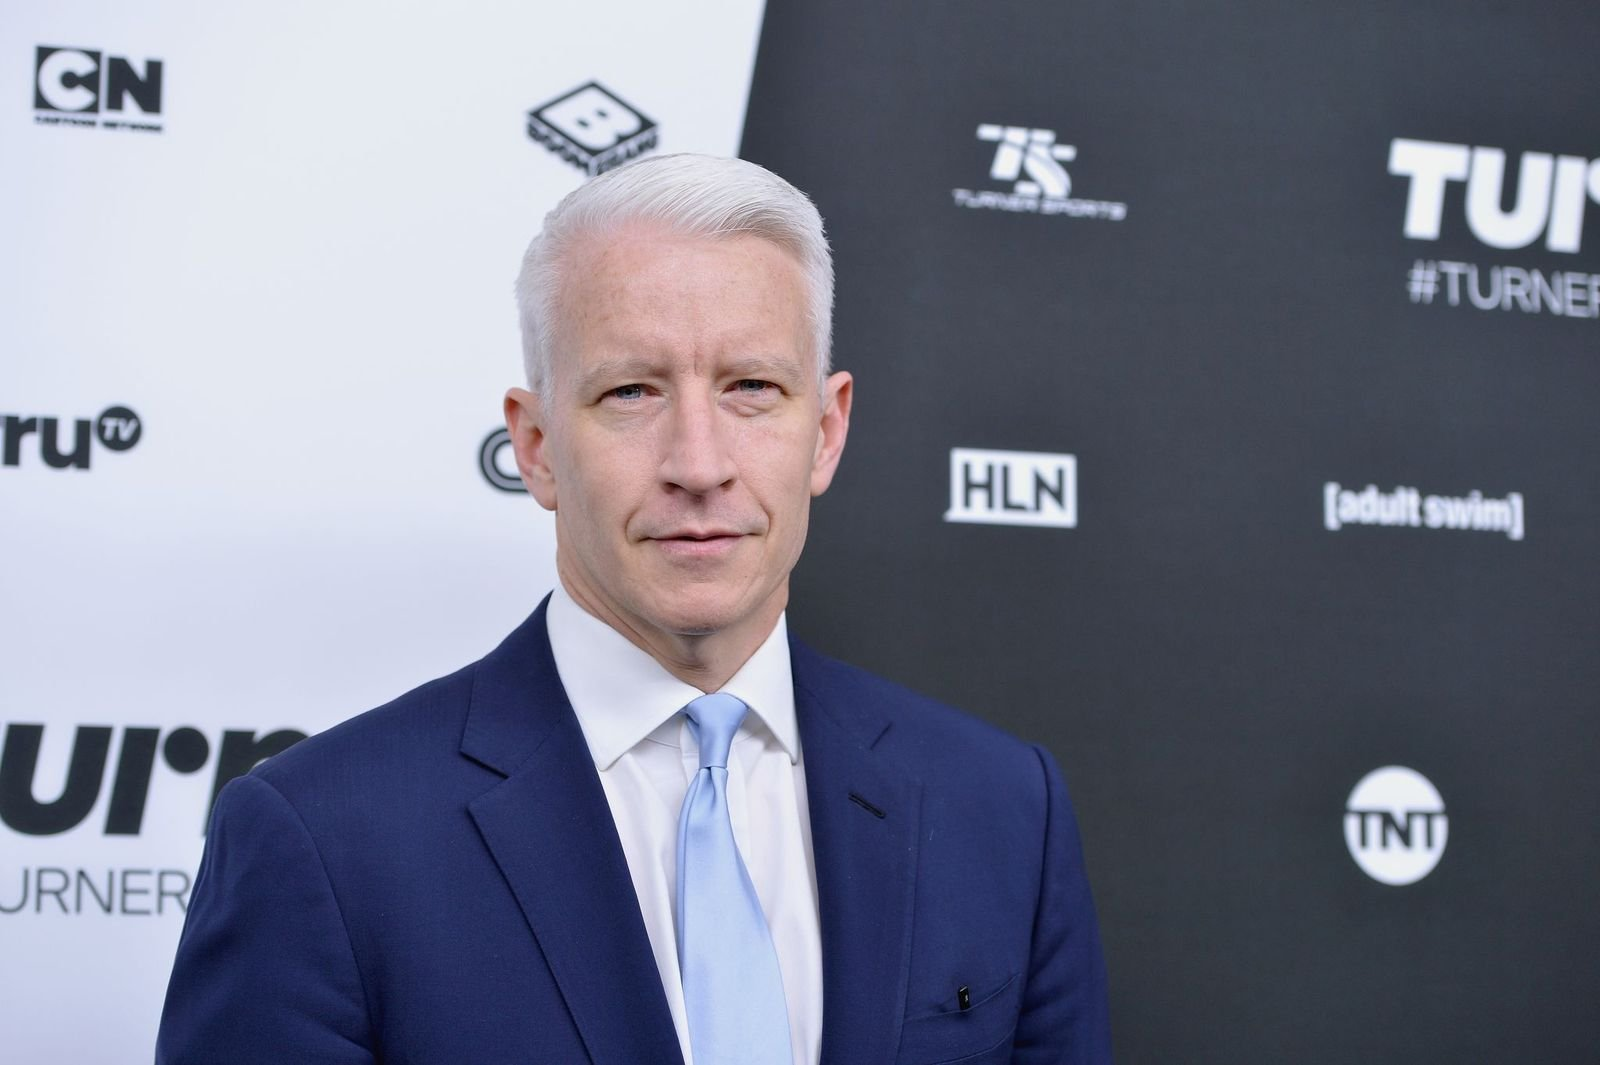 Anderson Cooper at the Turner Upfronton May 18, 2016, in New York City | Photo: Slaven Vlasic/Getty Images